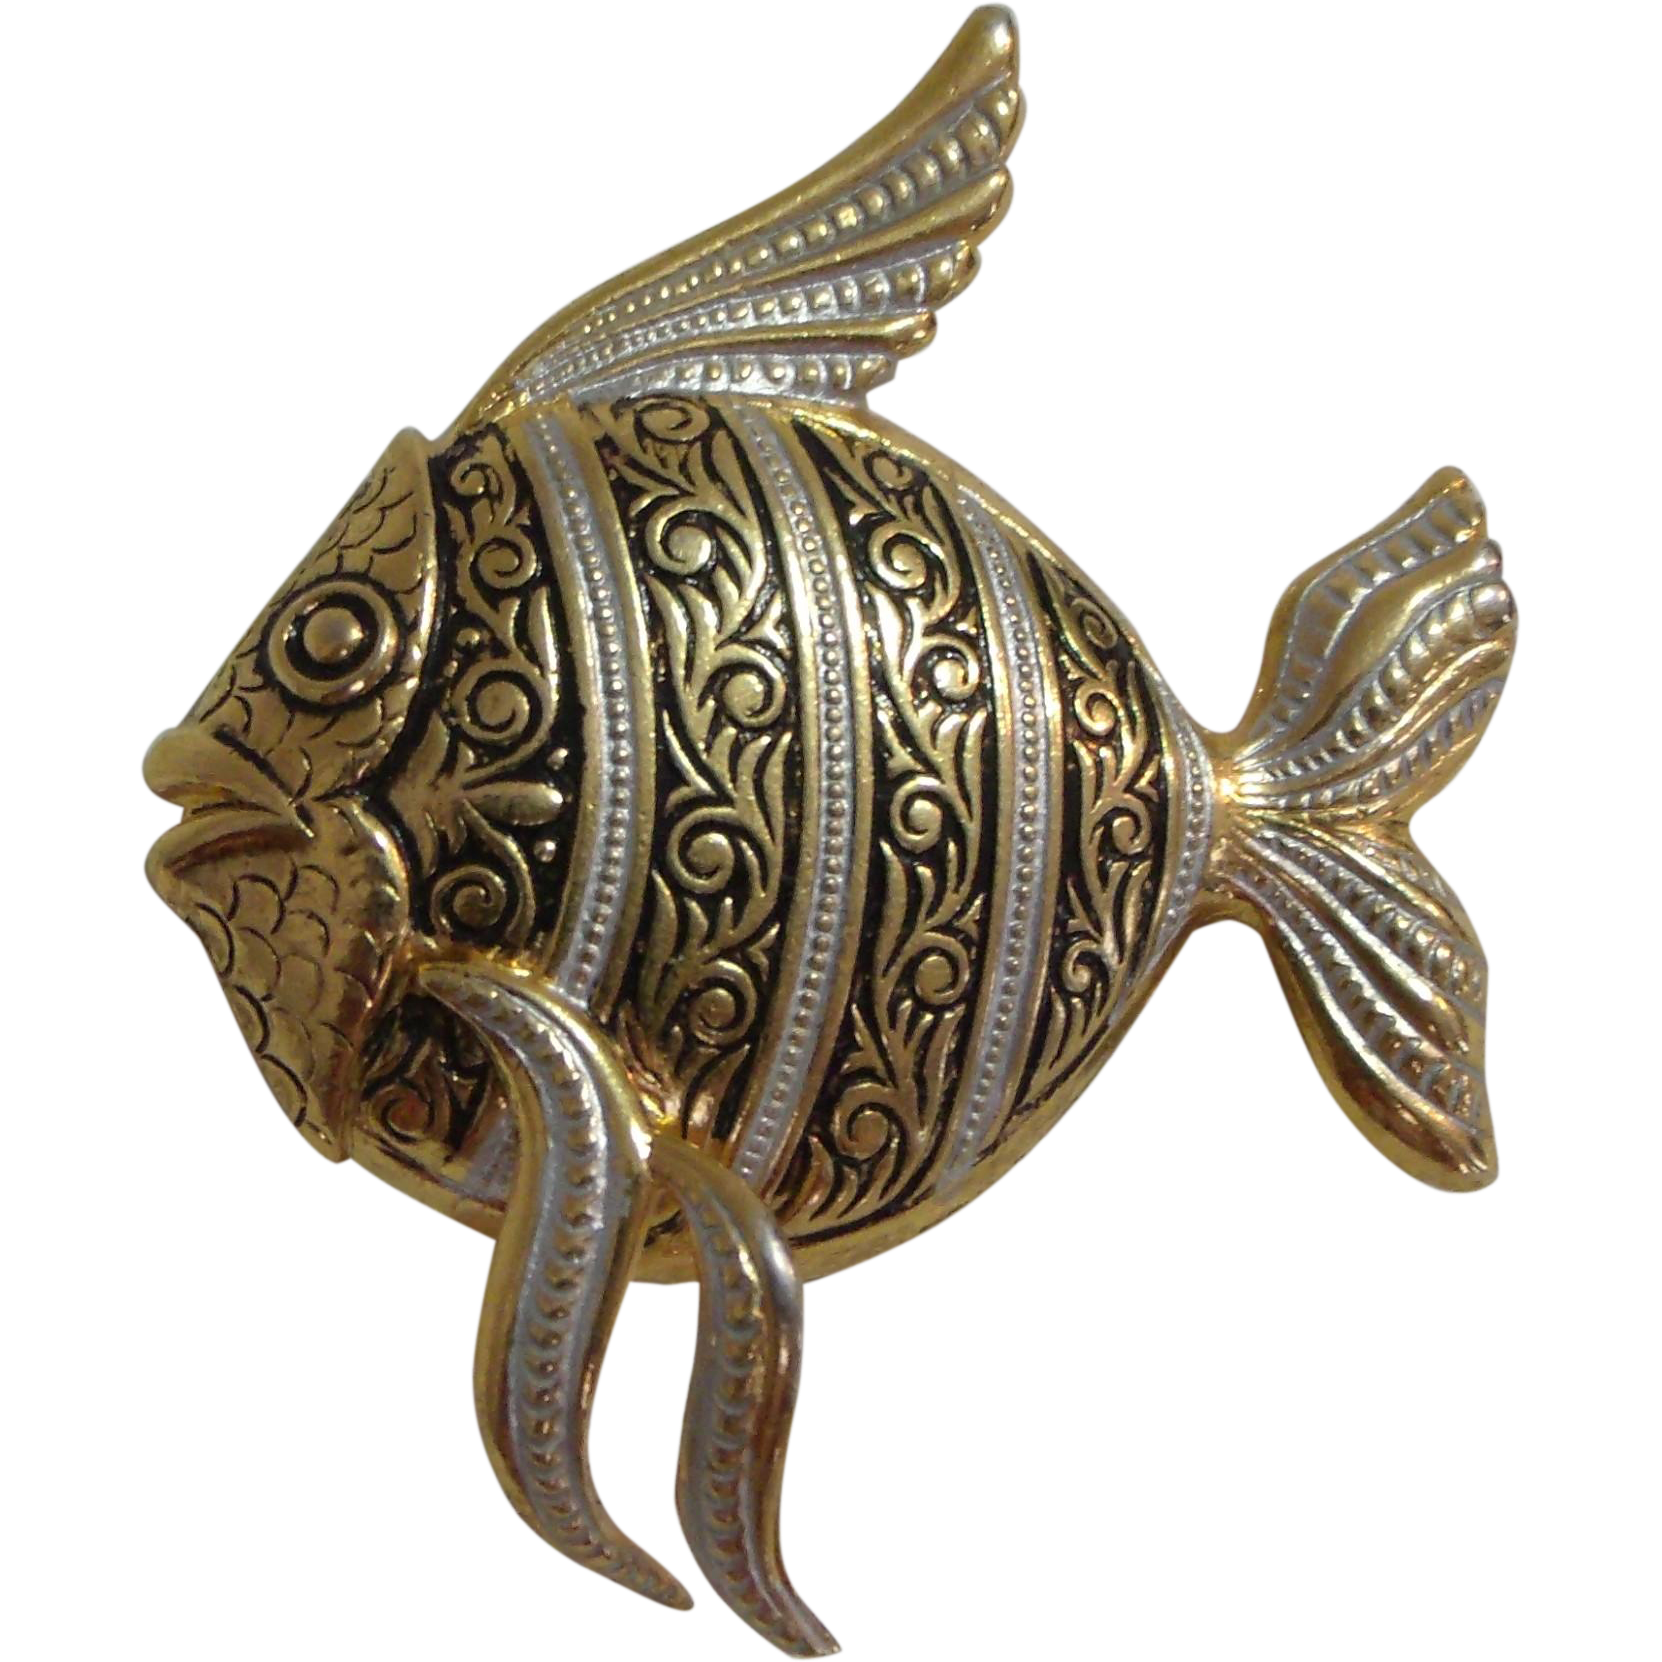 Fantastic Fish Pin / Brooch Gold Tone w/ Black & Silver Enamel